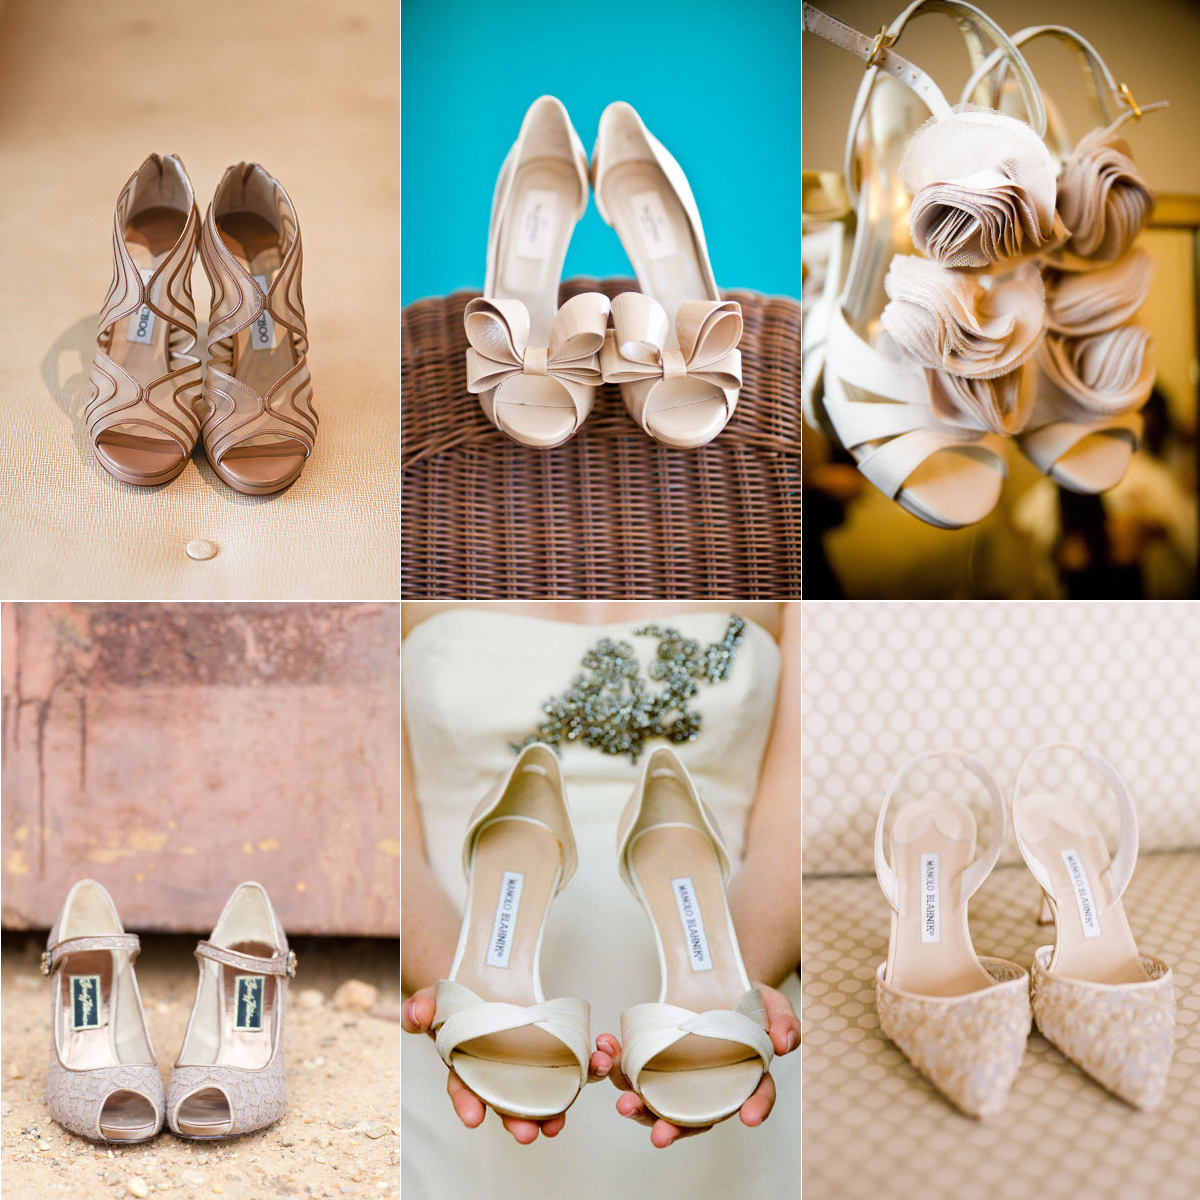 Neutral-wedding-shoes-artistic-wedding-photography-jimmy-choo-manolo-blahnick.original